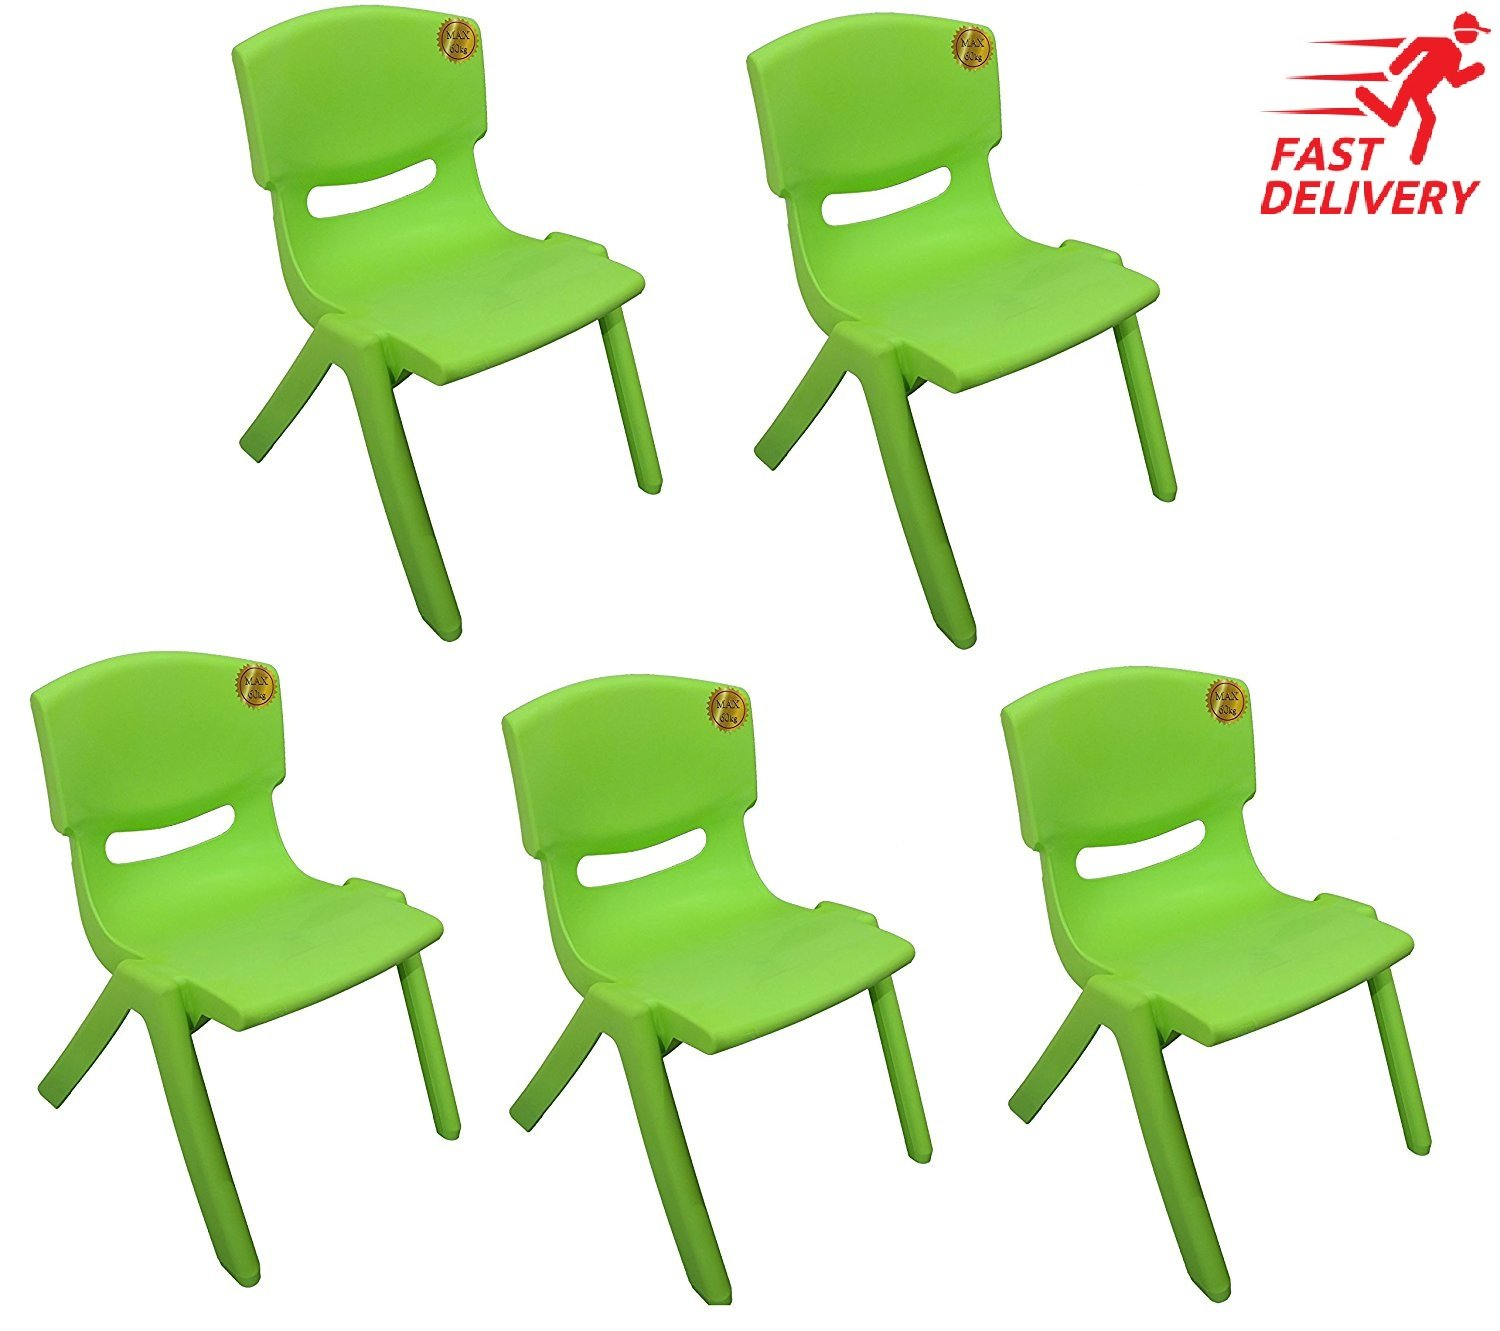 A406 10x Children Strong Stackable Kids Plastic Chairs Picnic Party Garden Nursery Club Indoor Outdoor Blue